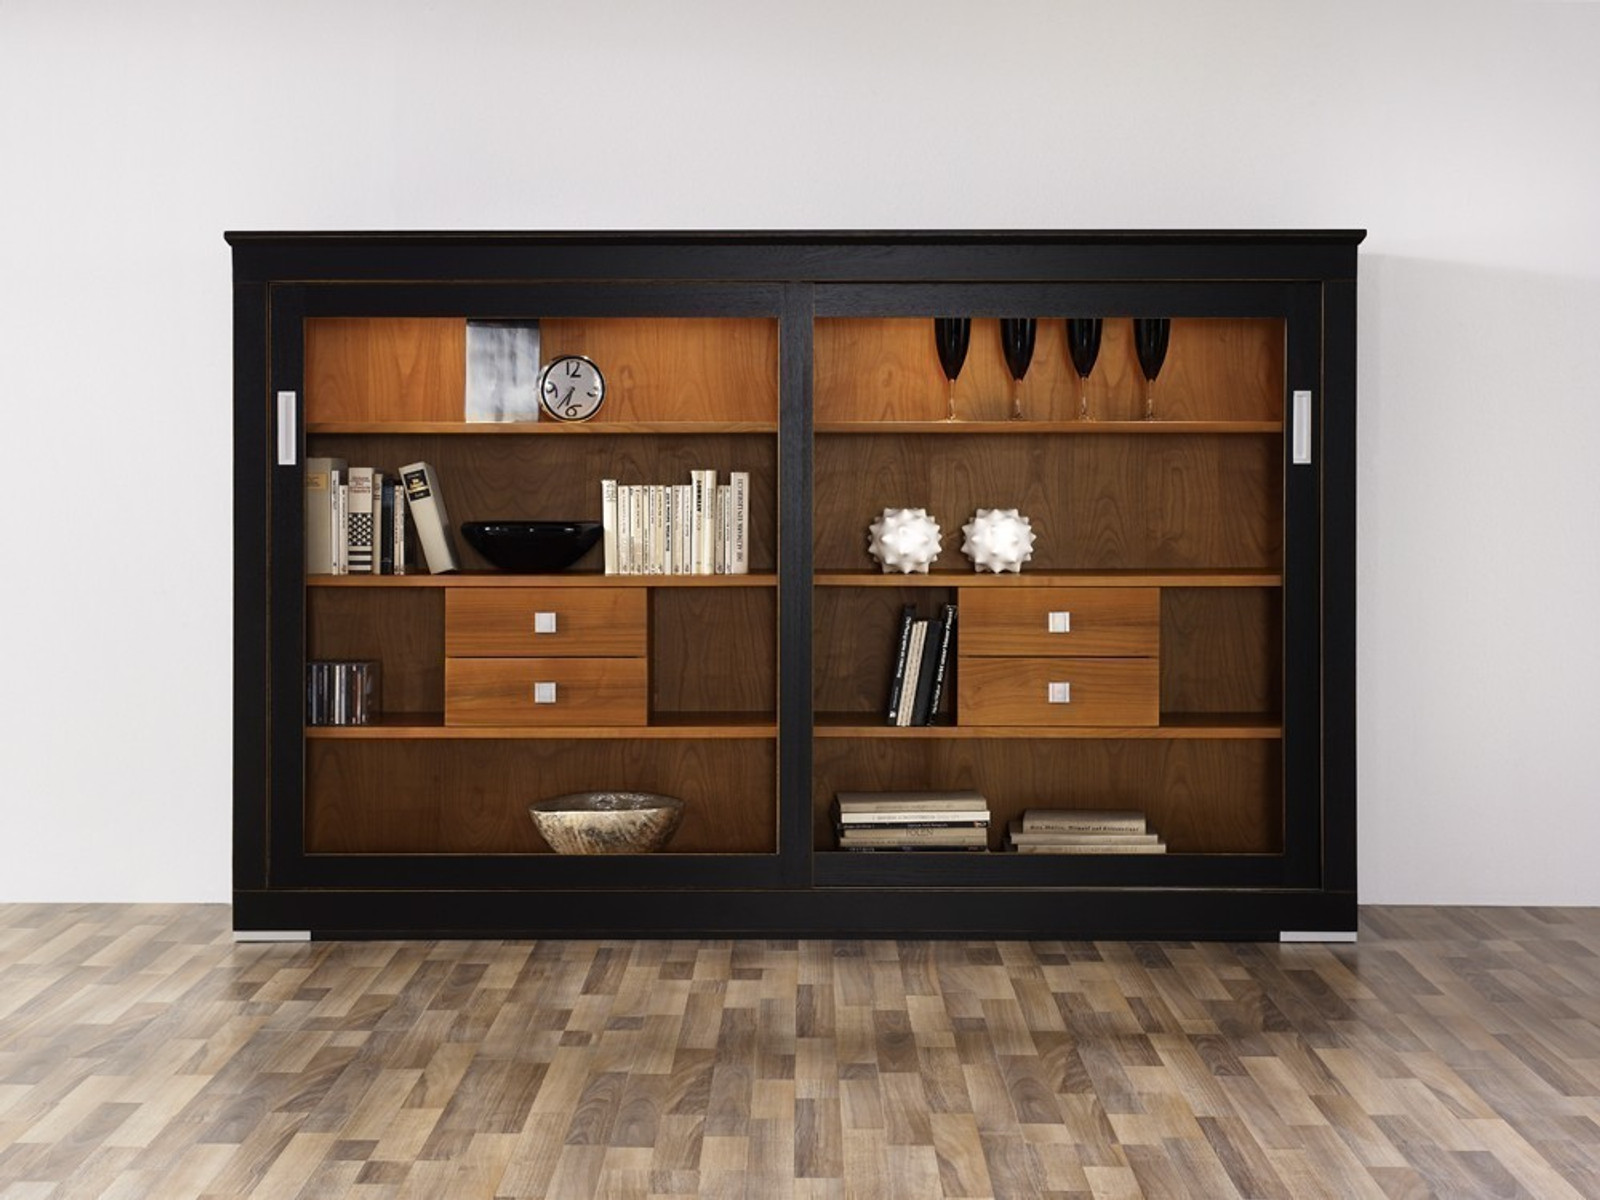 linum anrichte highboard sideboard mit schiebet ren modern landhaus eiche buche oder. Black Bedroom Furniture Sets. Home Design Ideas